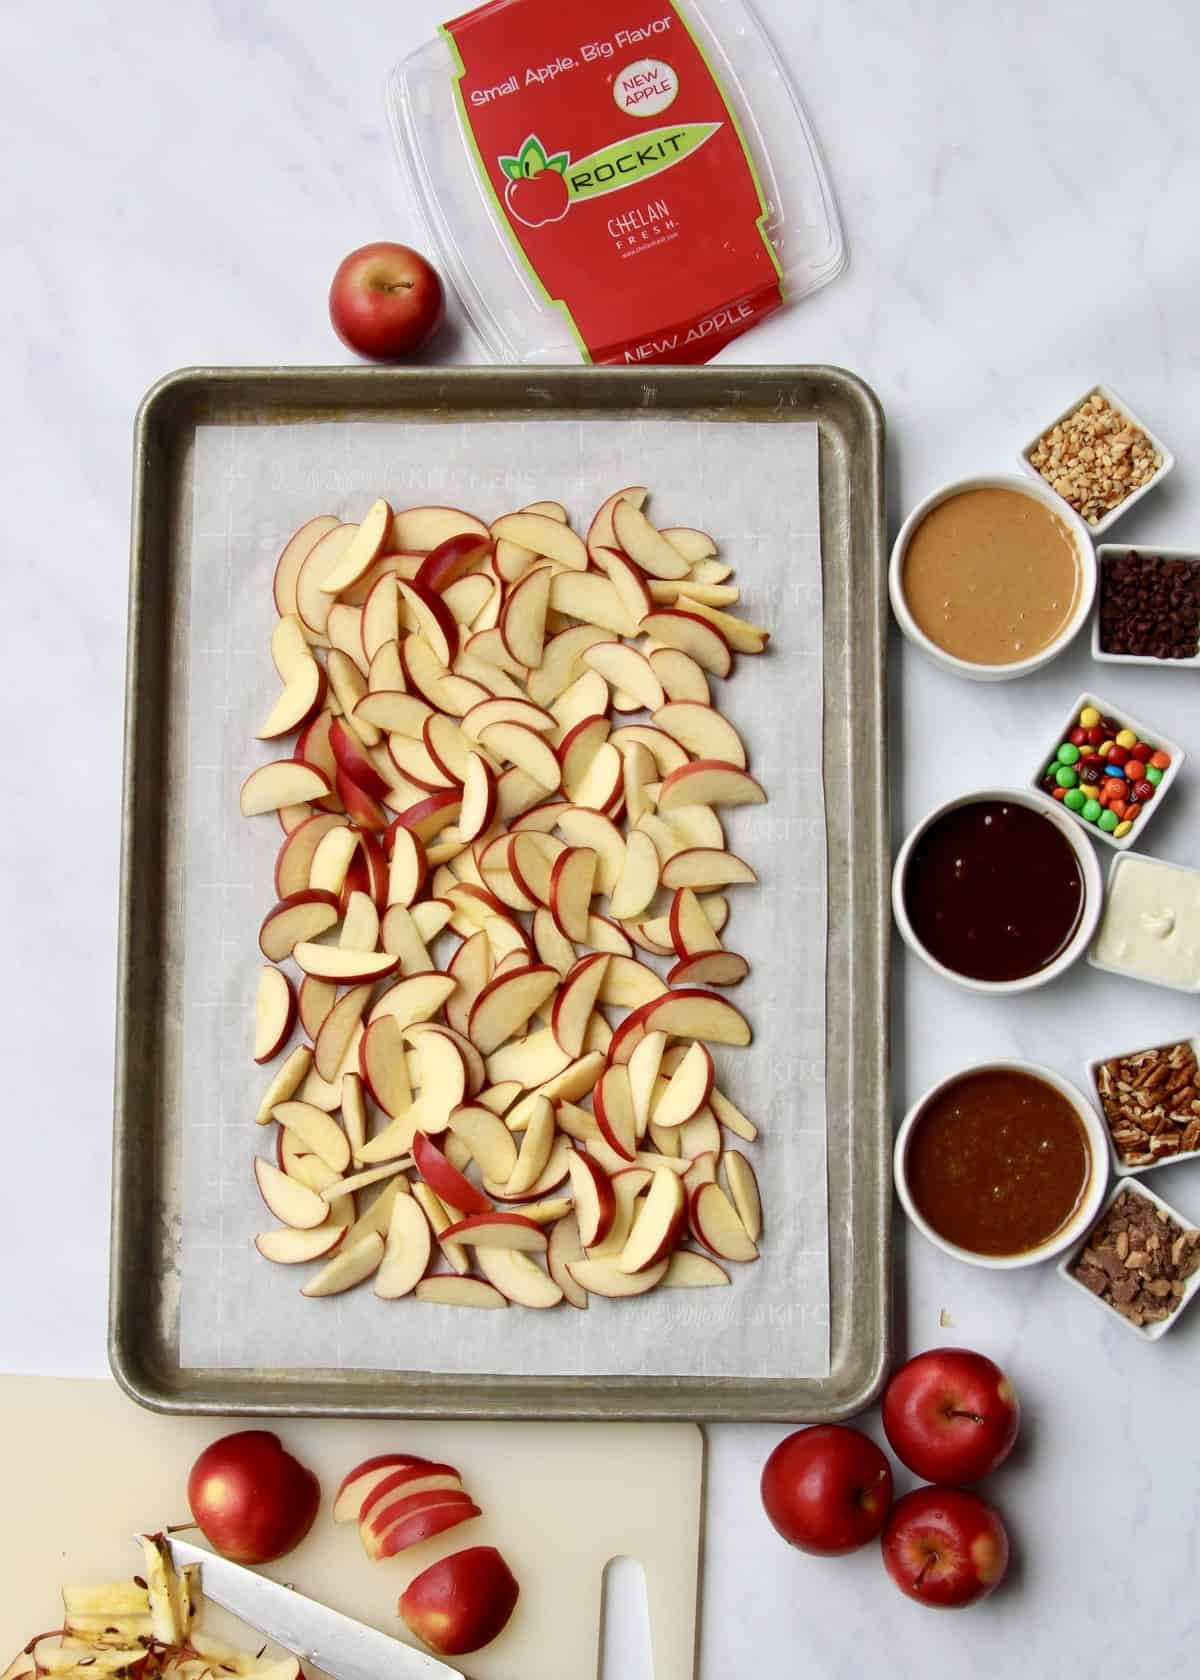 Apple Nachos - 3 Ways! by The BakerMama